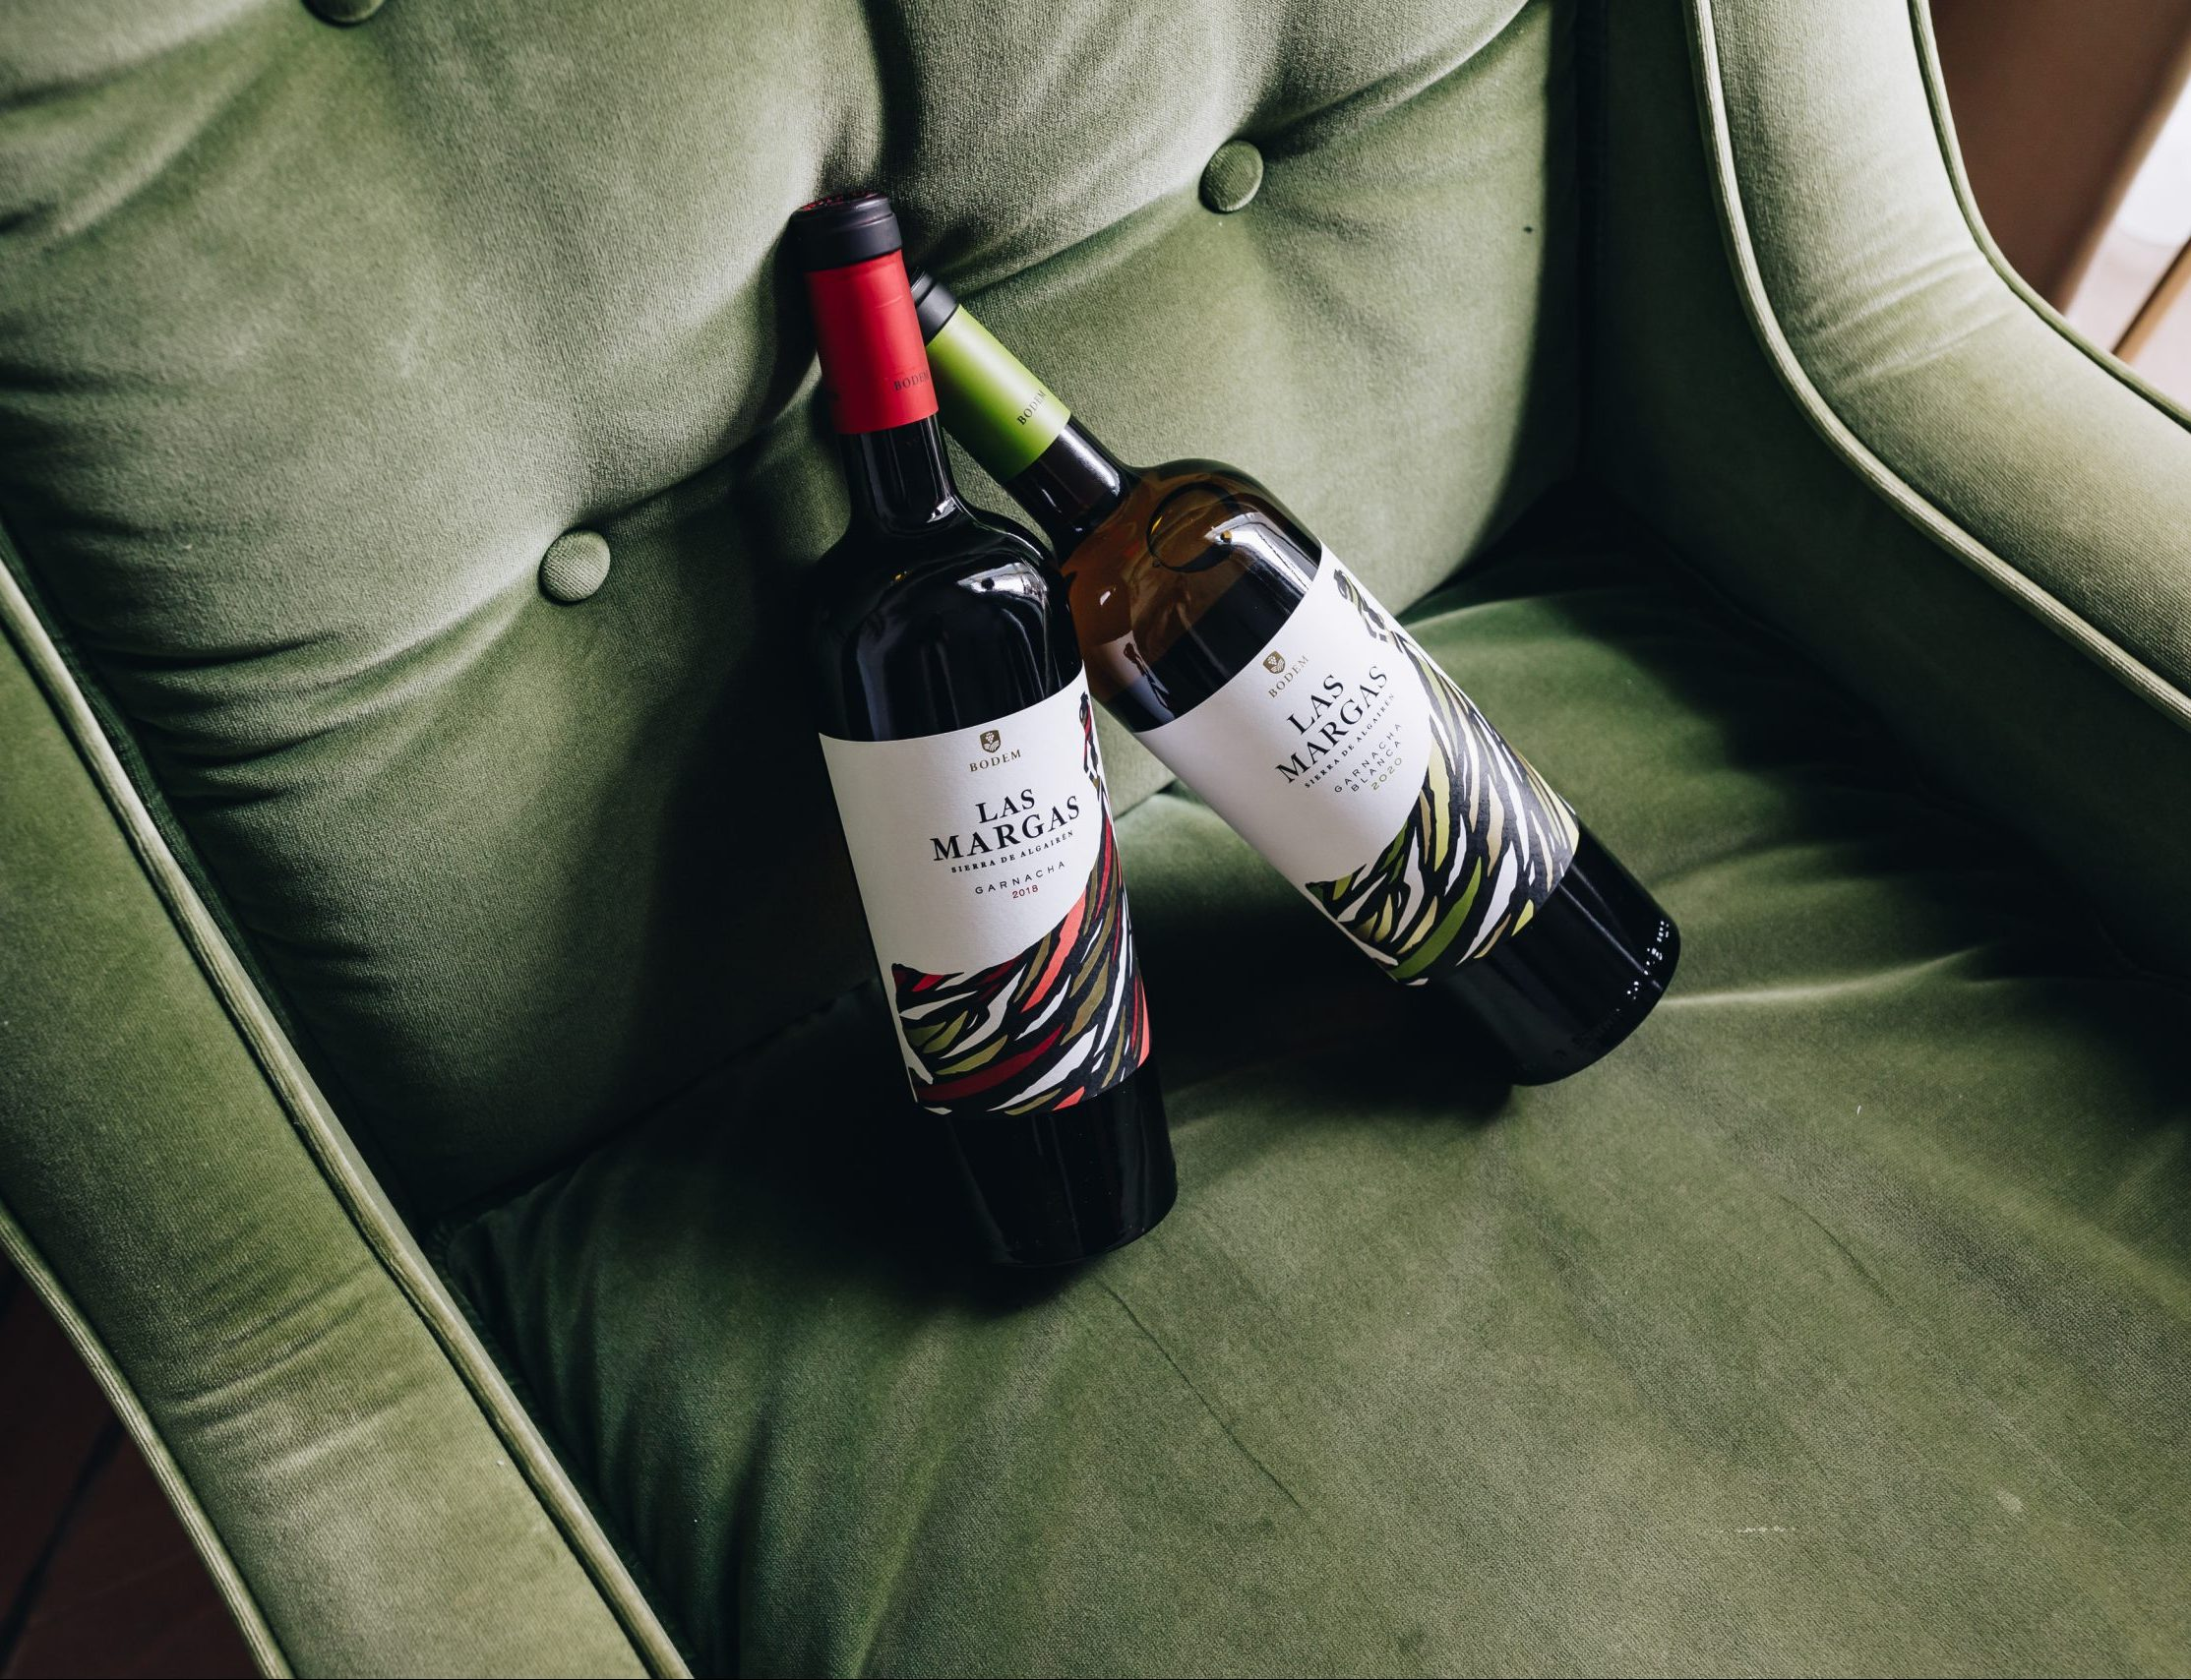 Axial Vinos | Spanish wines with Dutch roots | Mastering Garnacha